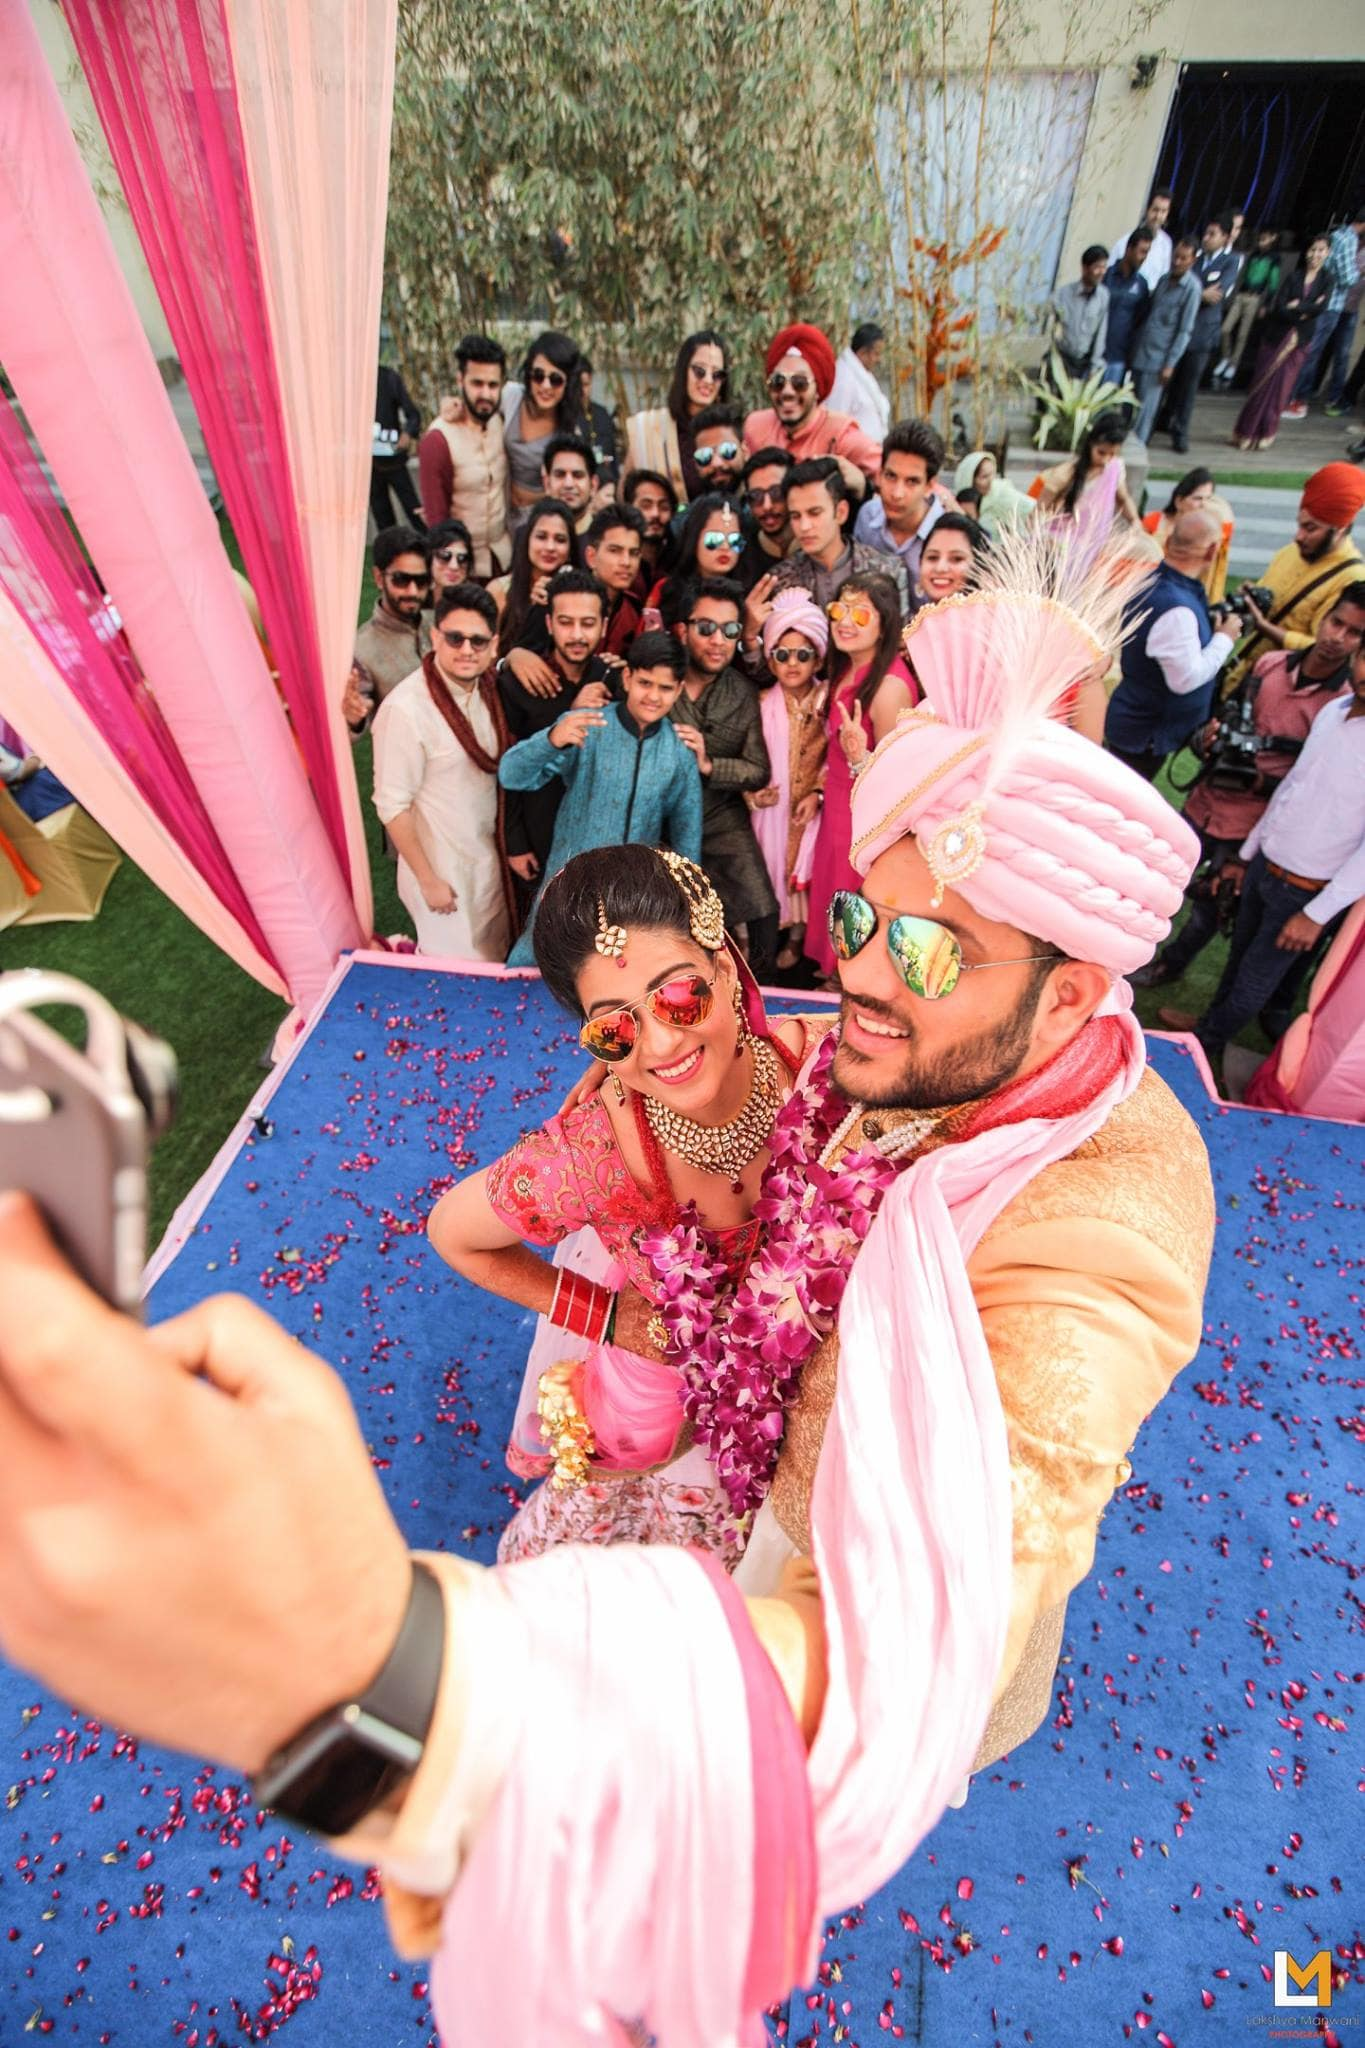 wedding selfie:lakshya manwani photography